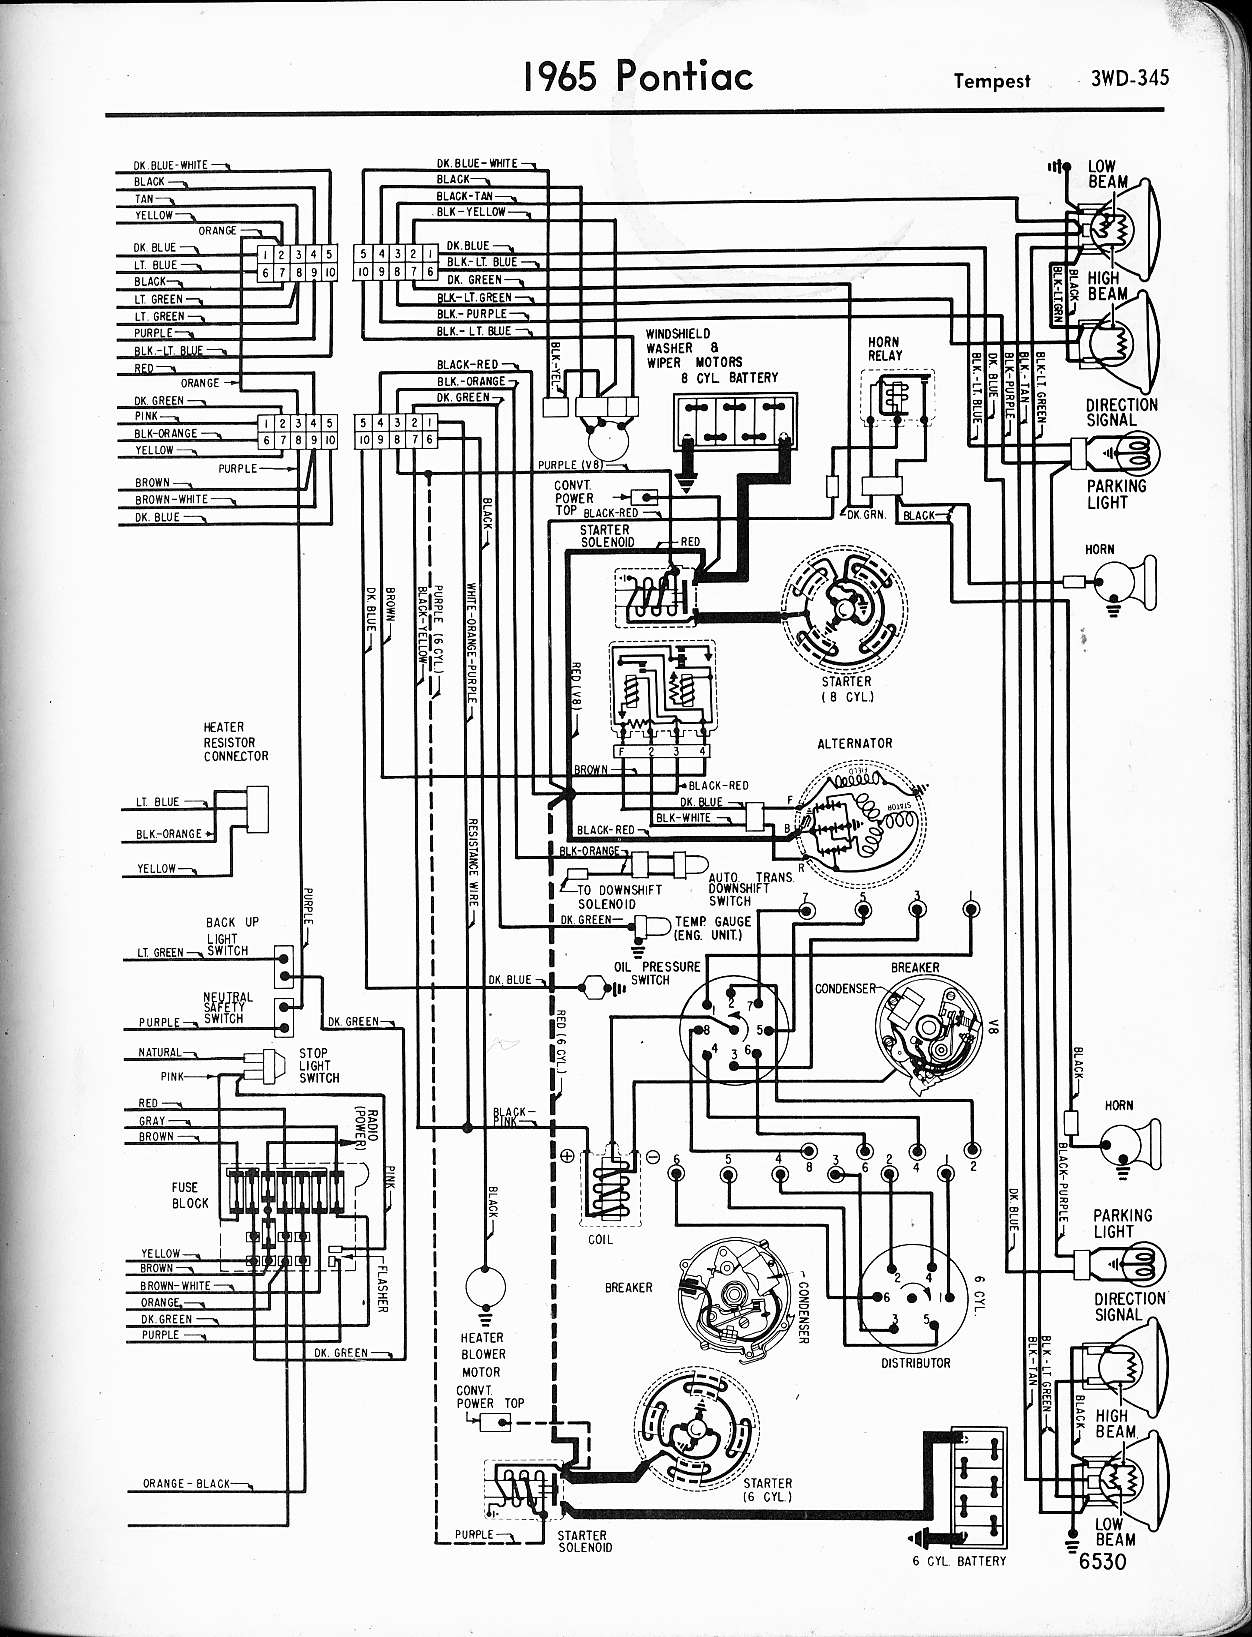 Wallace Racing Wiring Diagrams Mercedes 3 5l Engine Diagram 1965 Tempest Right Page